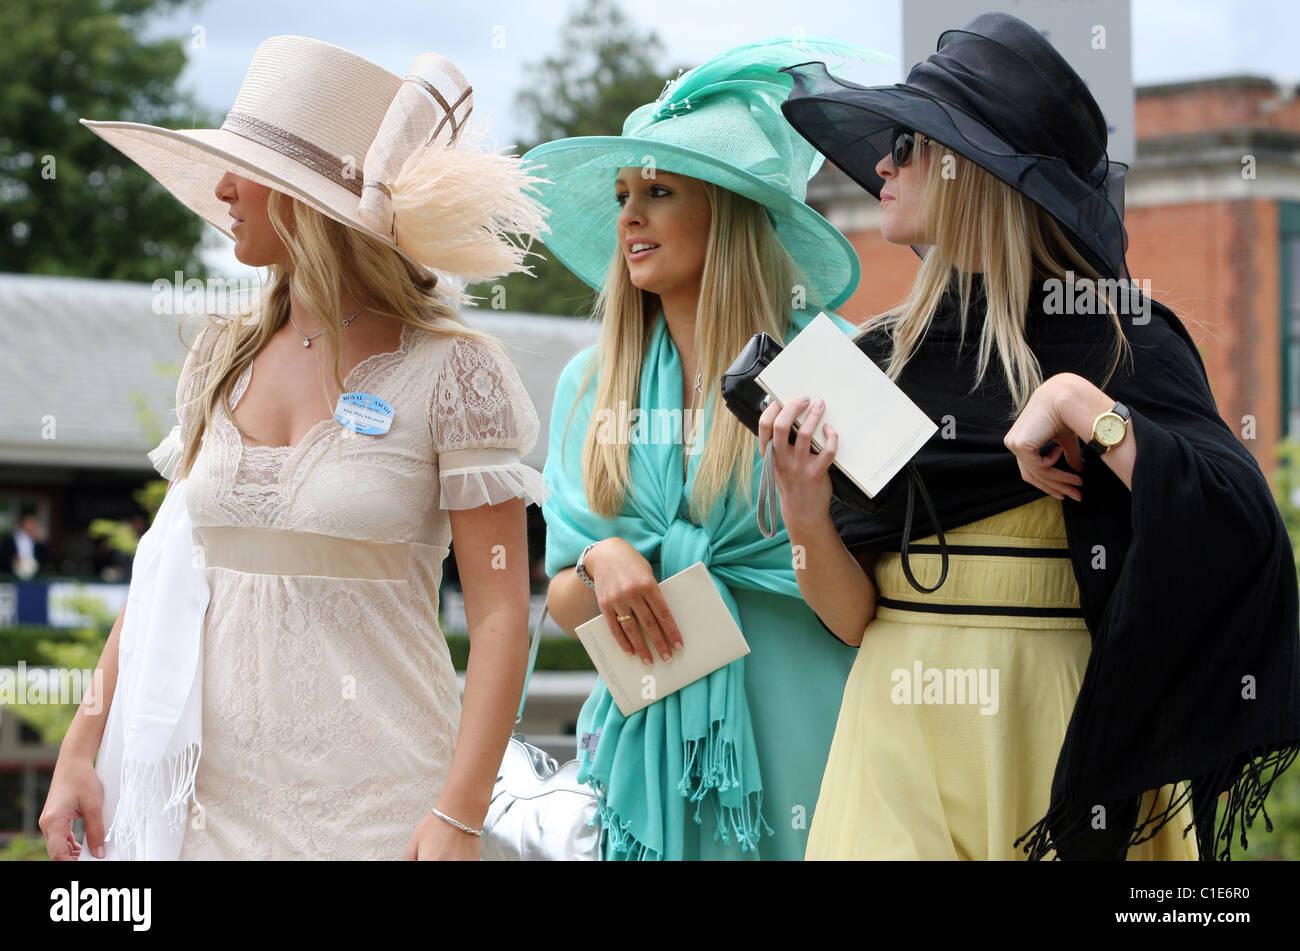 Ascot United Kingdom  City pictures : Elegantly Dressed Women In Hats, Ascot, United Kingdom Stock Photo ...